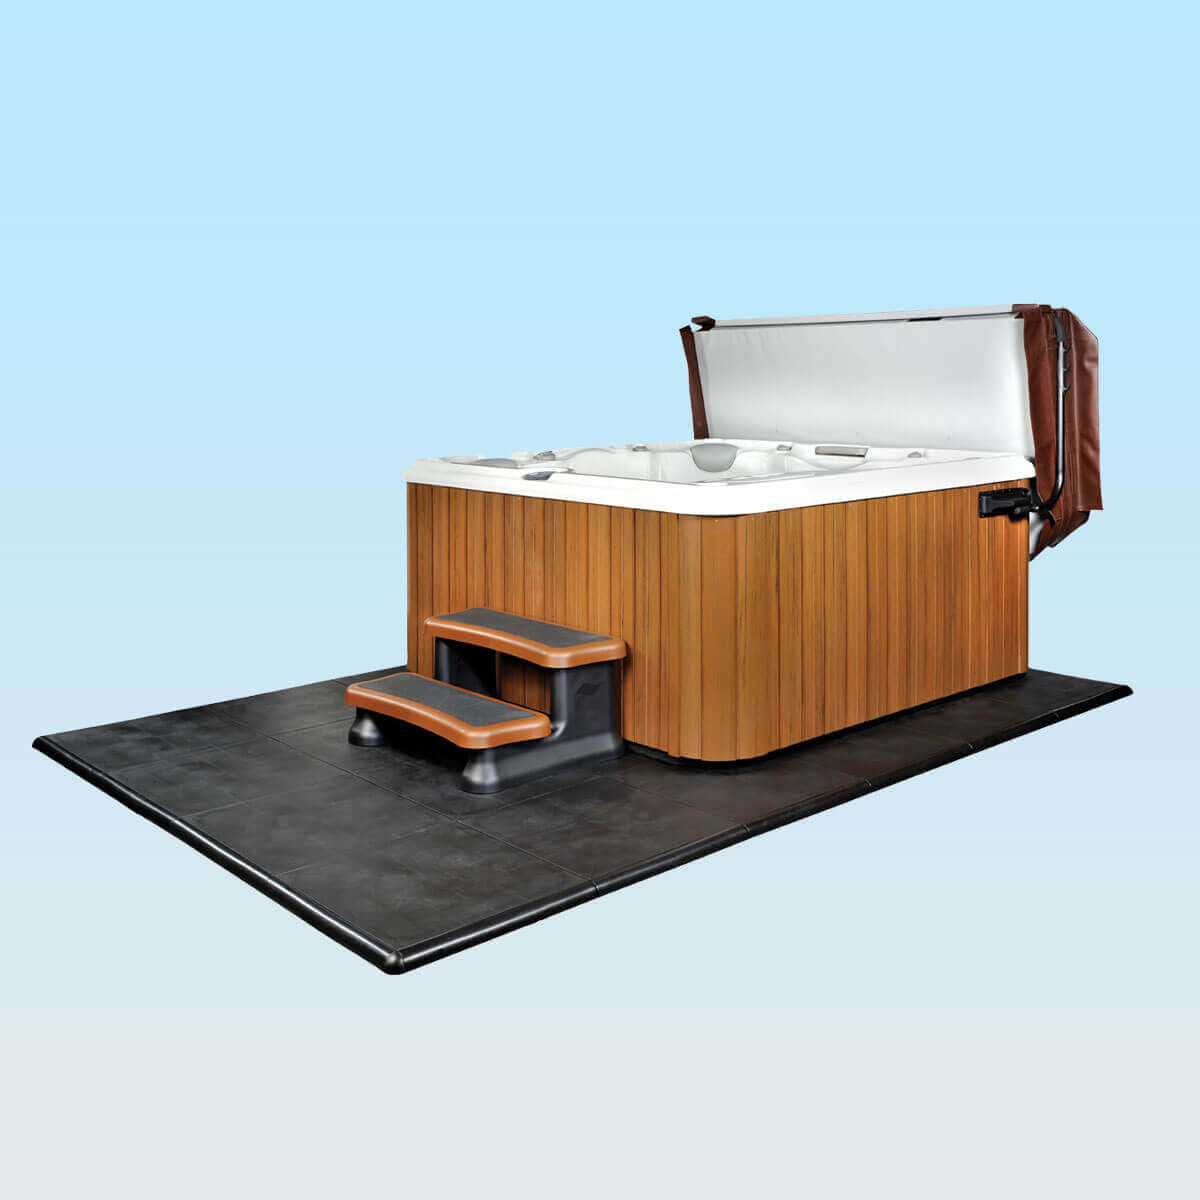 pedicure chair accessories office desk and set india smartdeck olympic hot tub